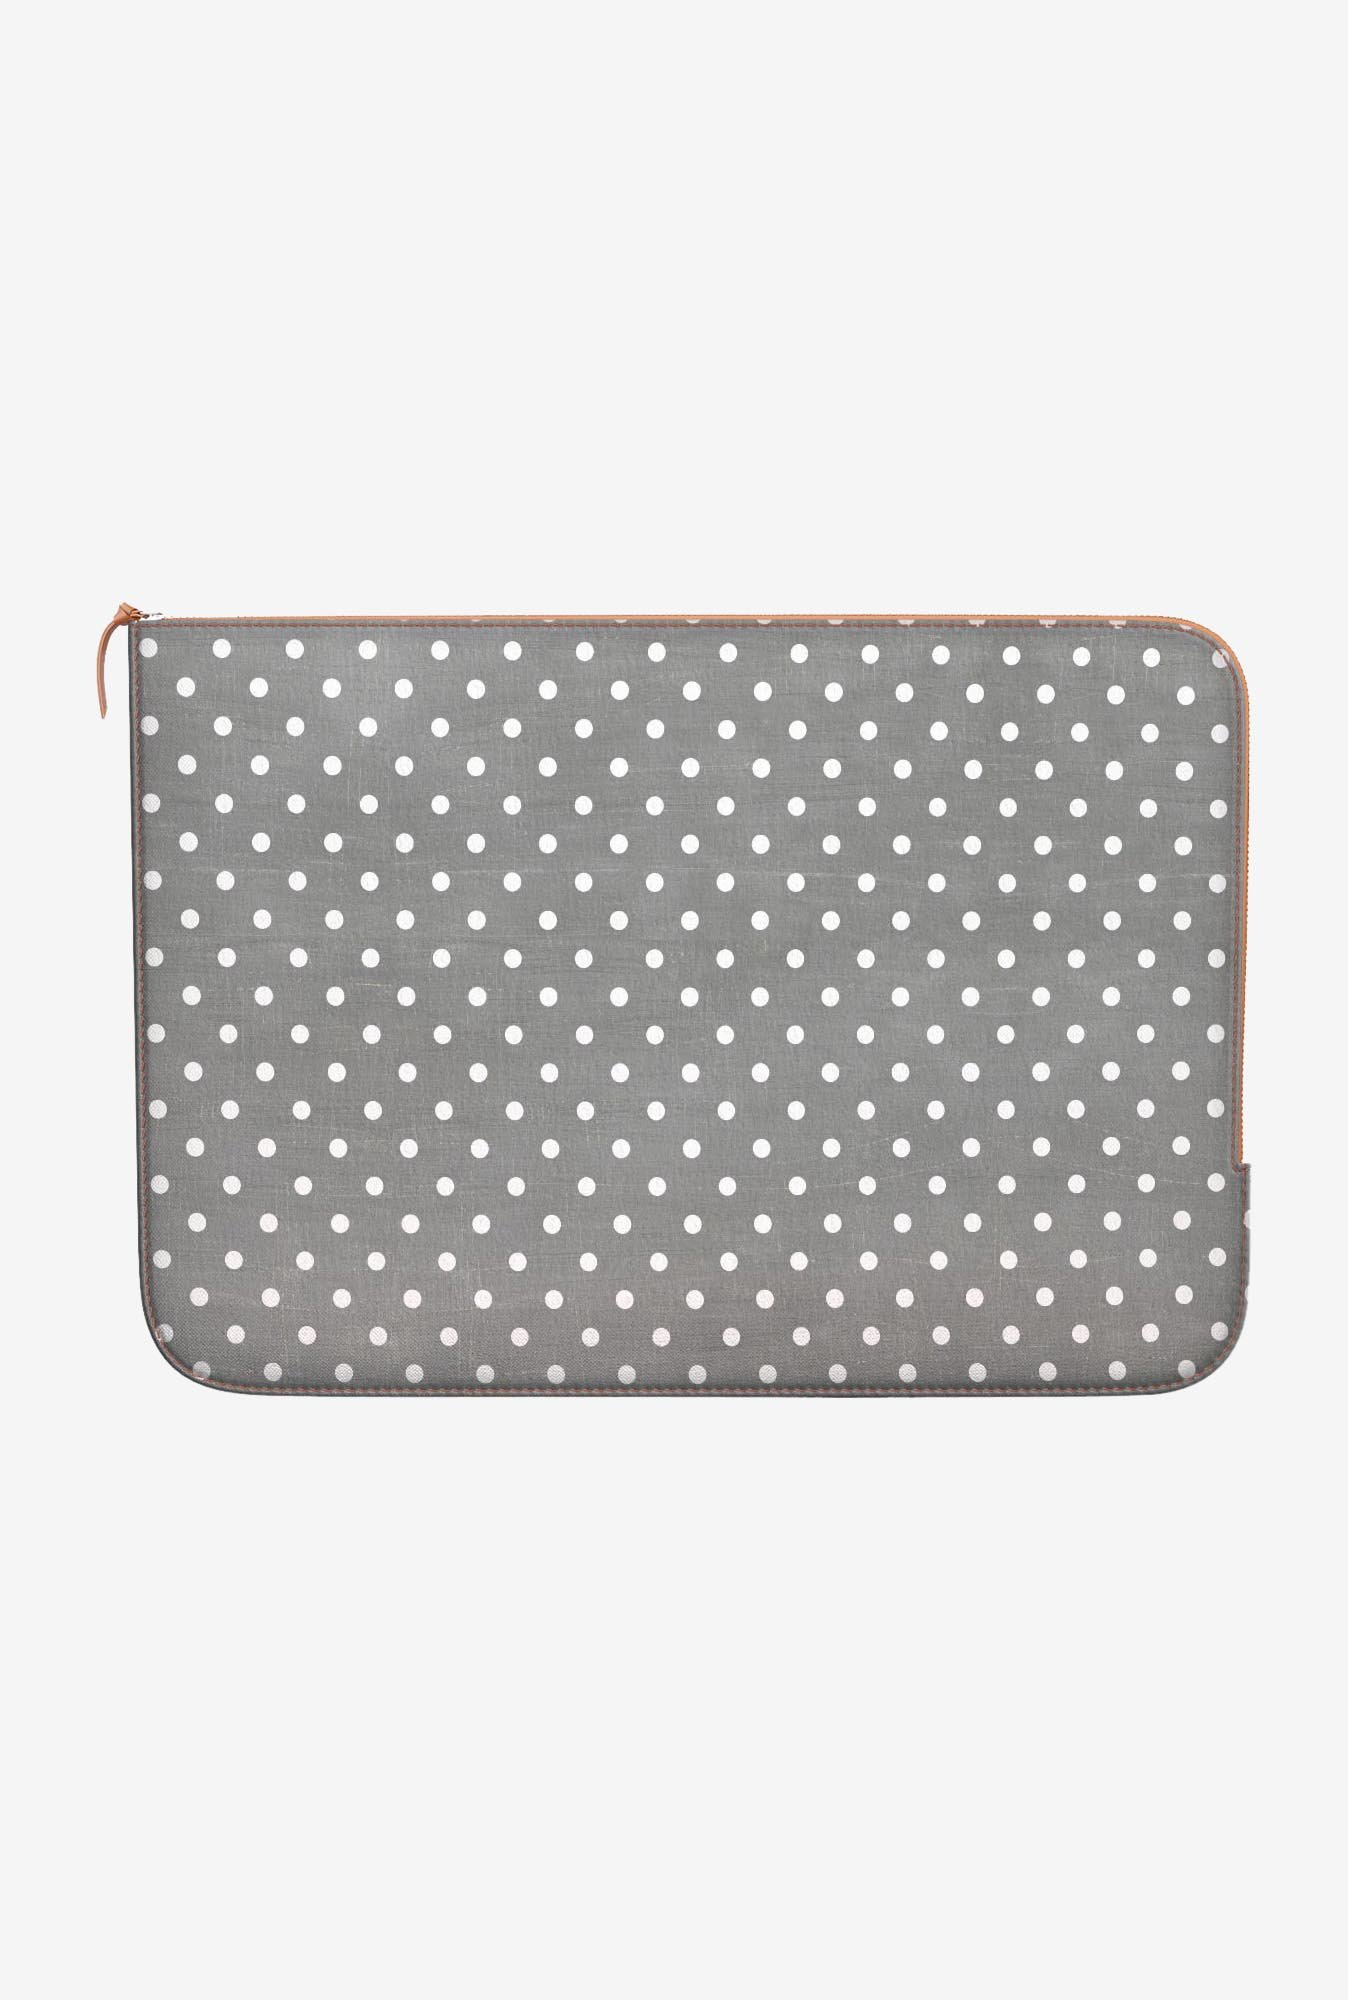 DailyObjects Swiss Dots MacBook Air 11 Zippered Sleeve